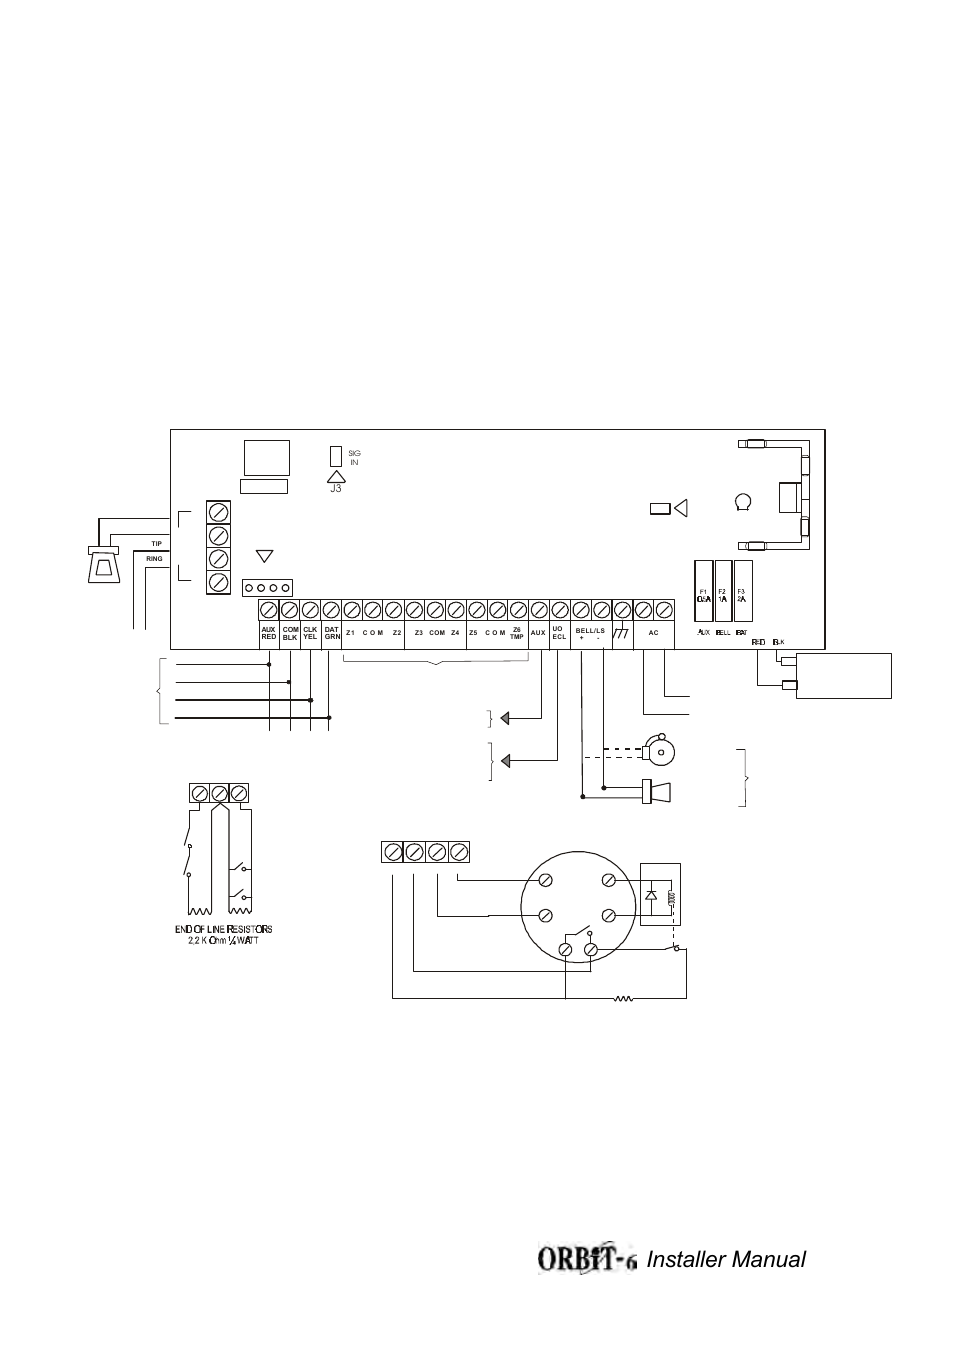 Orbit-6 wiring diagram figure 1a, Installer manual 32 | Orbit ... on bell 206 fuel tank, bell 206 remote control, bell 206 manual, bell 206 engine, bell 206 parts diagram, bell 206 electrical system, bell 206 dimensions, bell 206 seats, bell 206 fuel system,